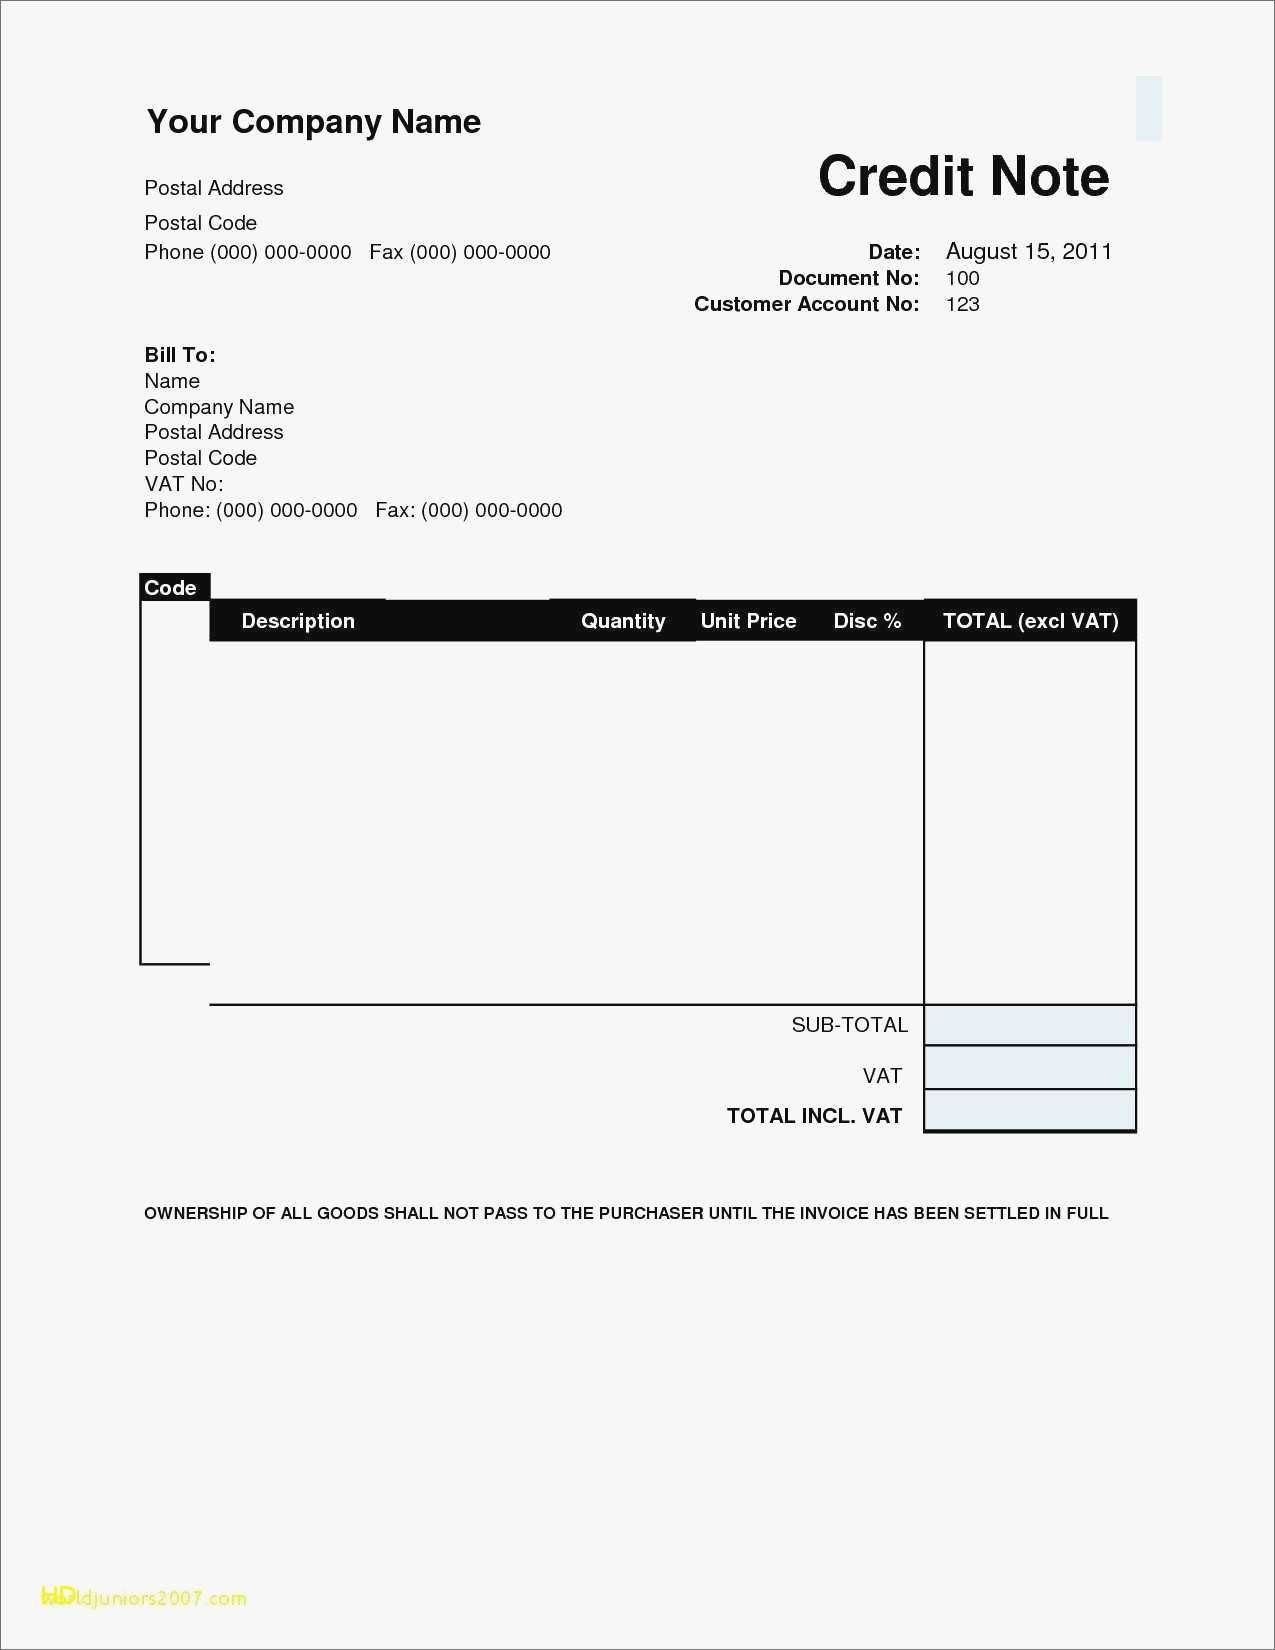 Legal Invoice Template Word Awesome Legal Invoice Template – Pewna Apteka